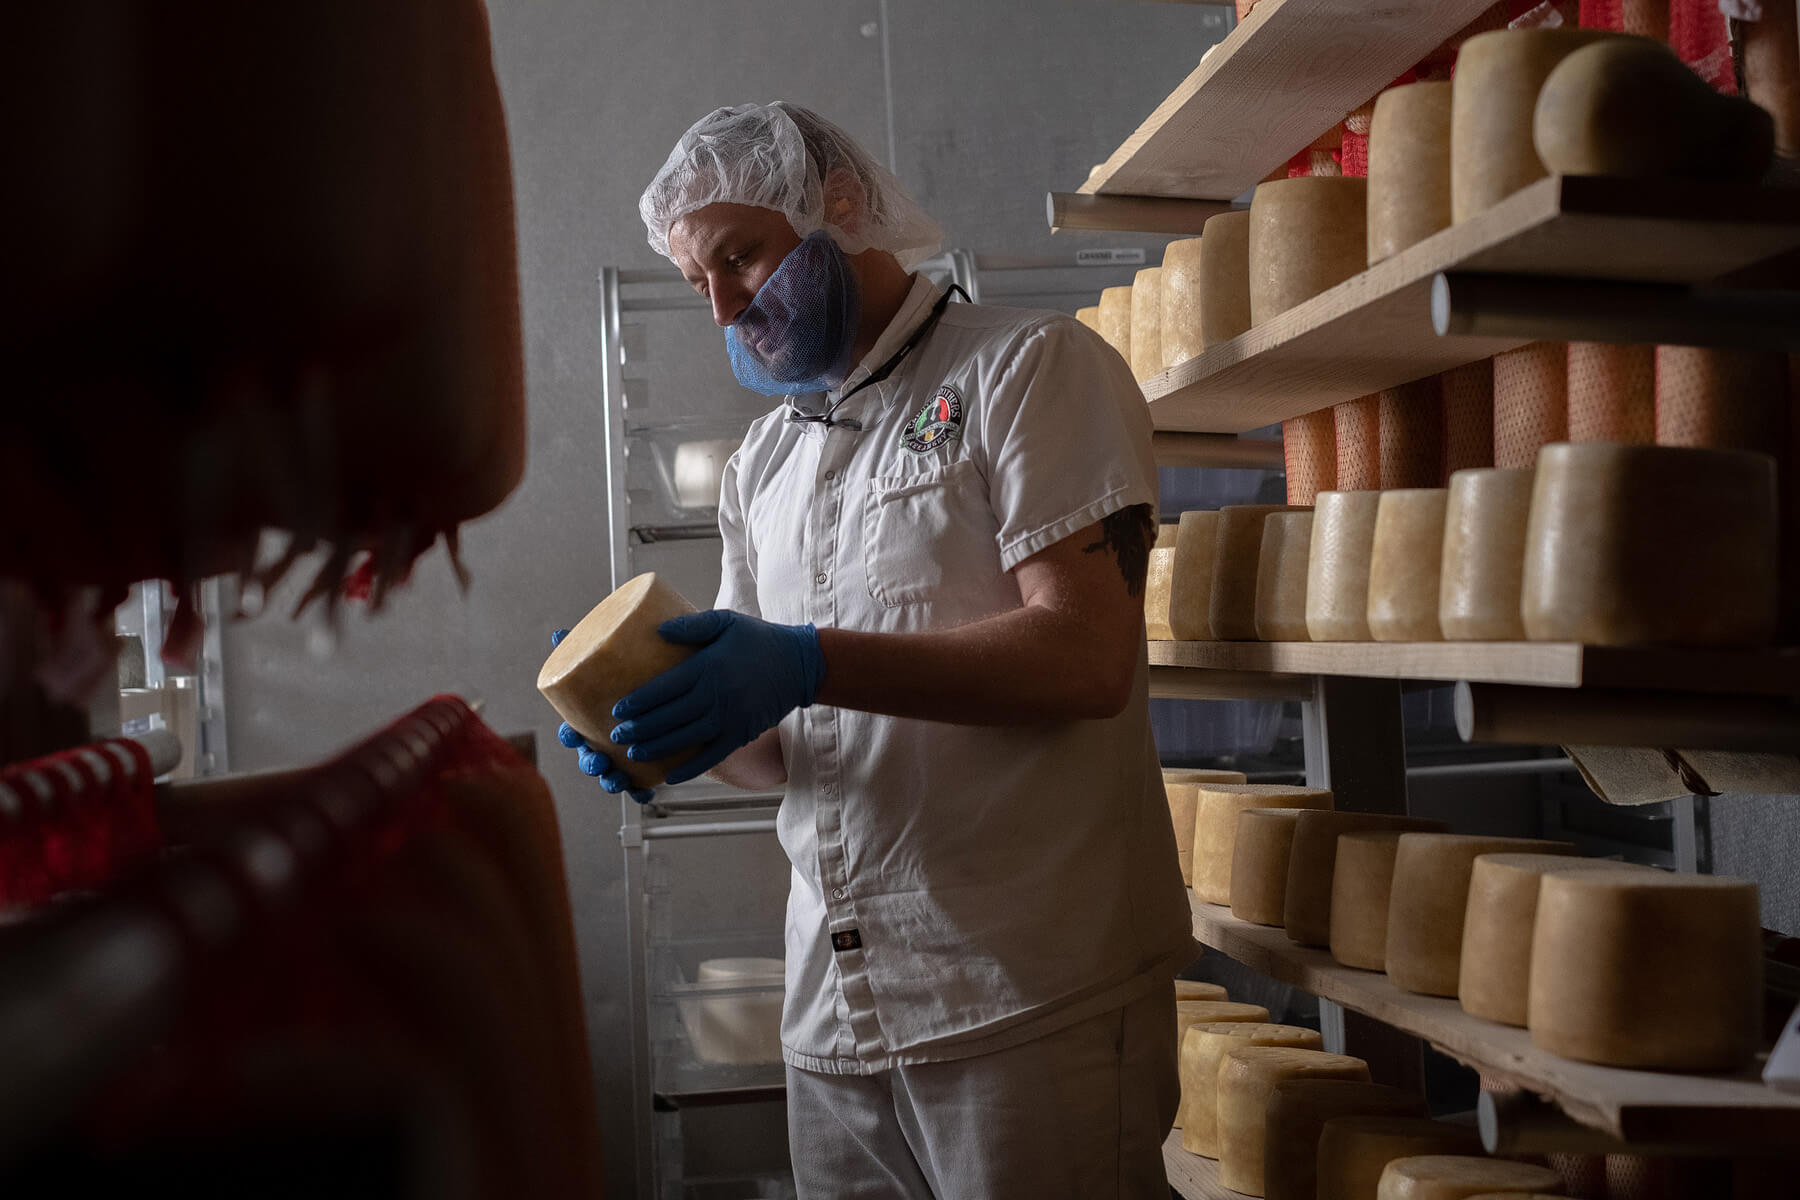 Caputo Brothers Creamery is struggling to place orders in the wake of covid-19 (March 2020)